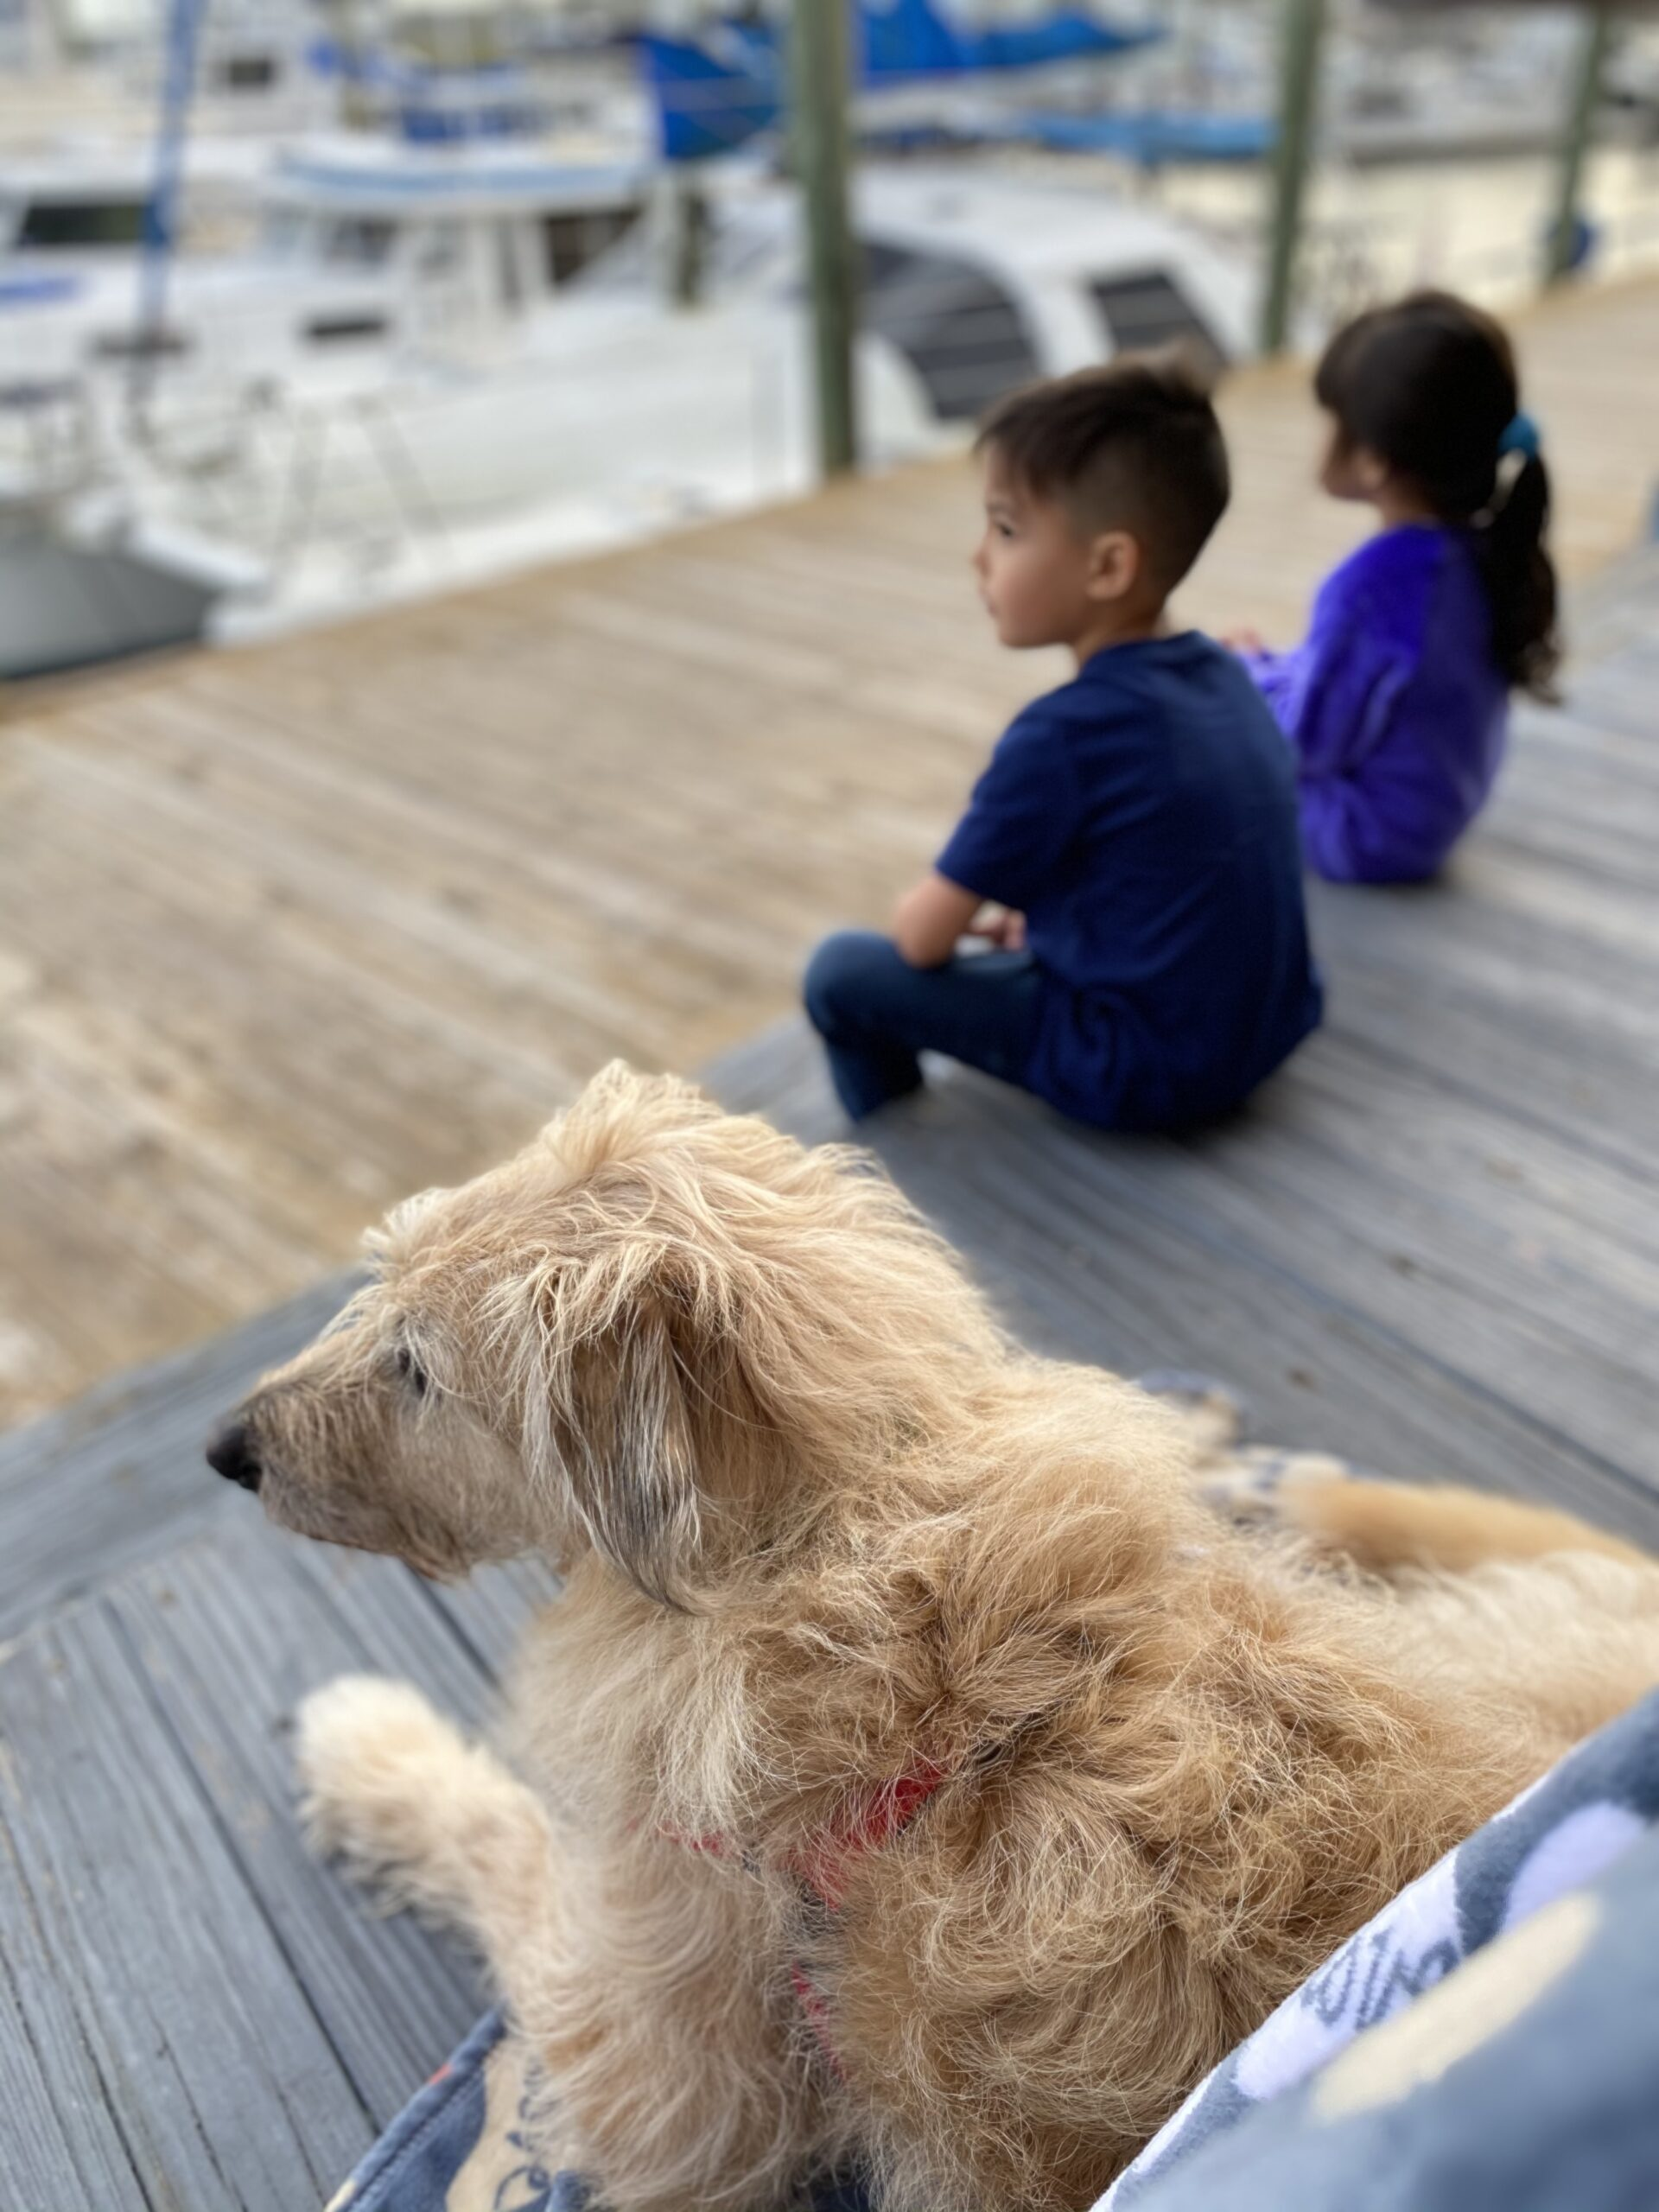 Dog friendly marina restaurant in St. Augustine, Florida